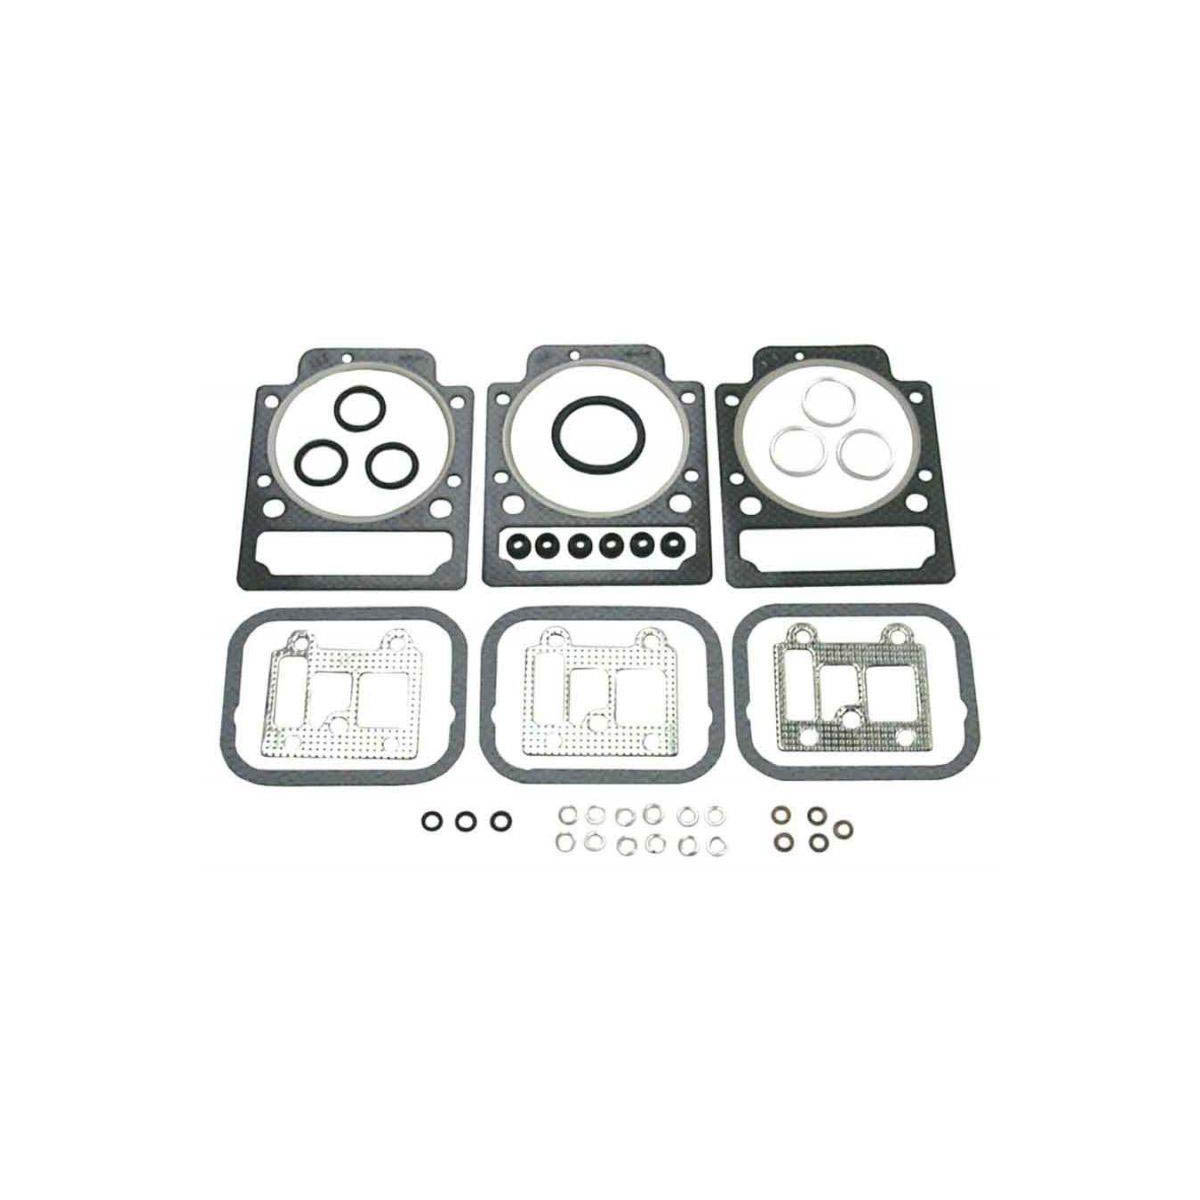 876380A KIT GASKET SUPERIORE MD17C, MD17D